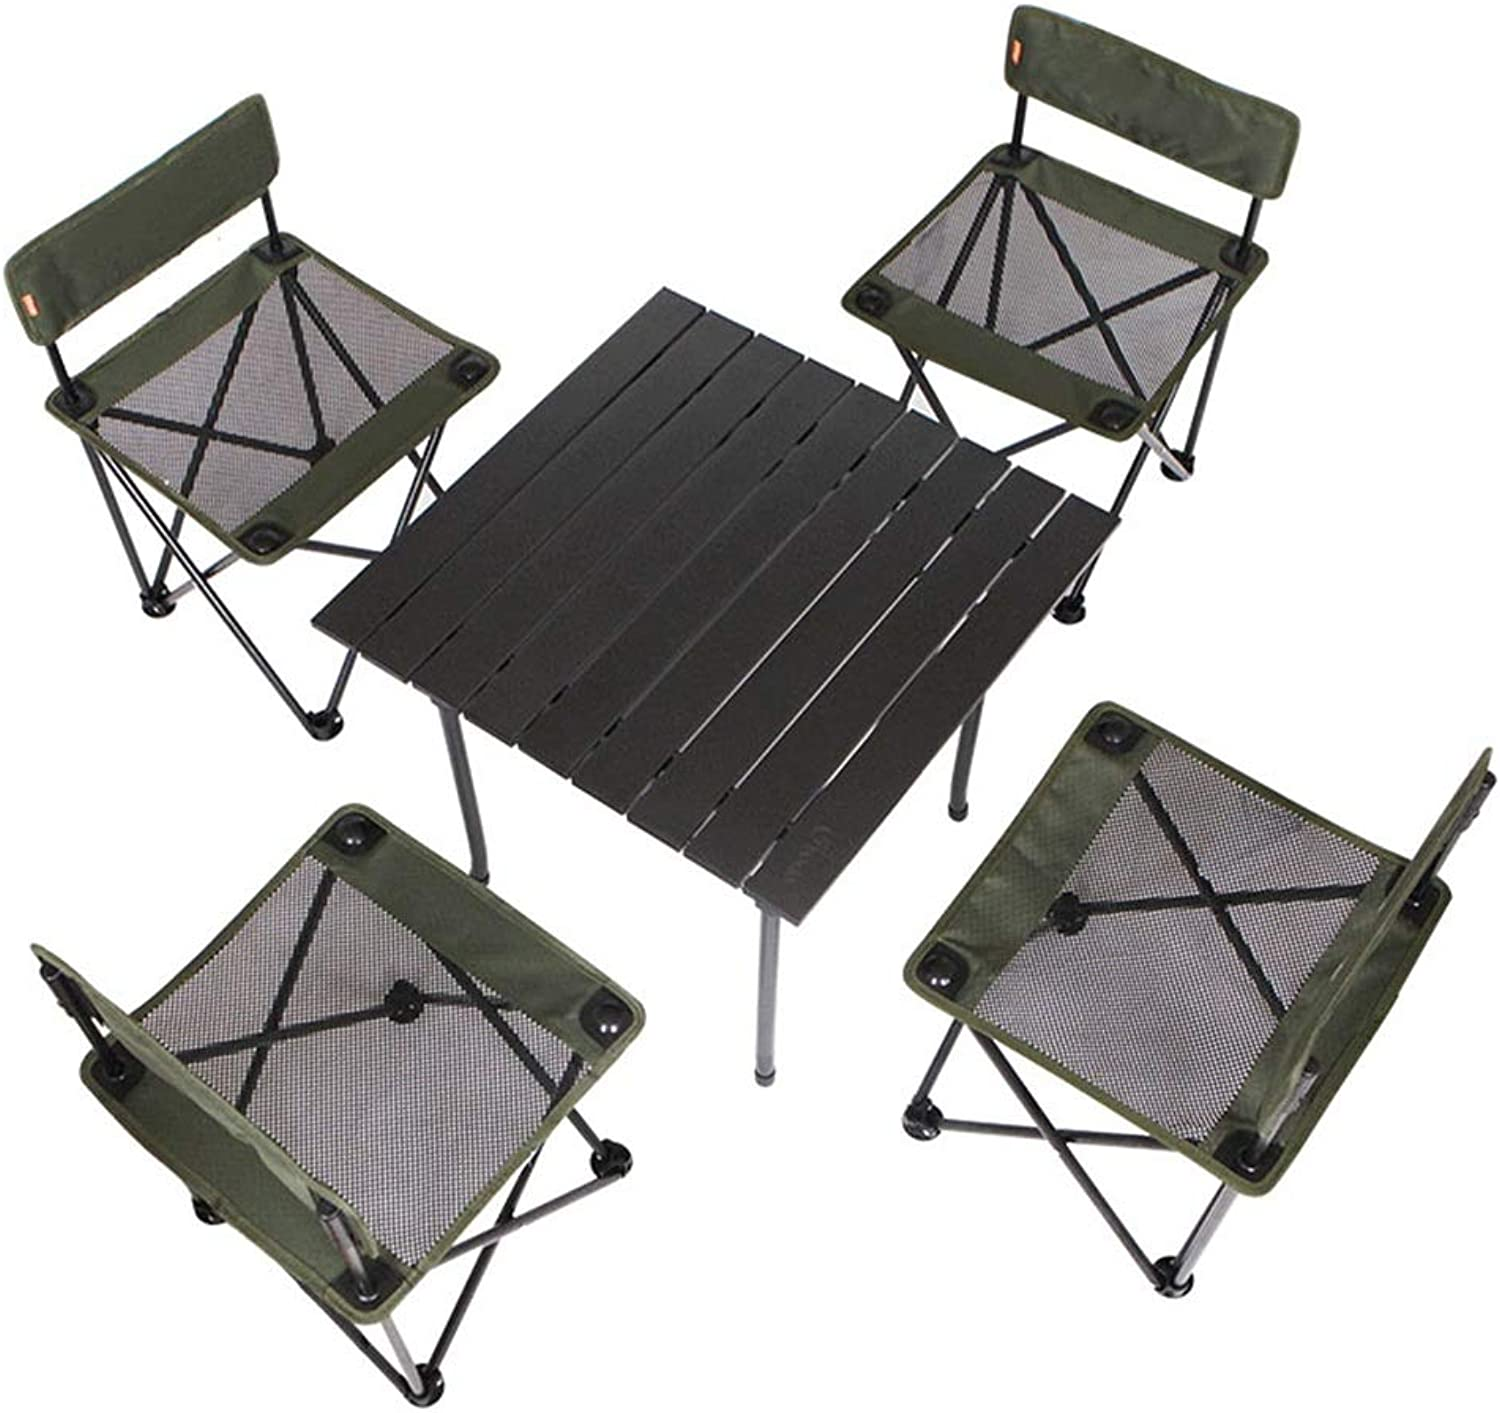 HAIZHEN table Folding Table Chair Set (5pc), Aluminum Alloy SelfDriving Car Picnic Camping Home Dormitory Balcony